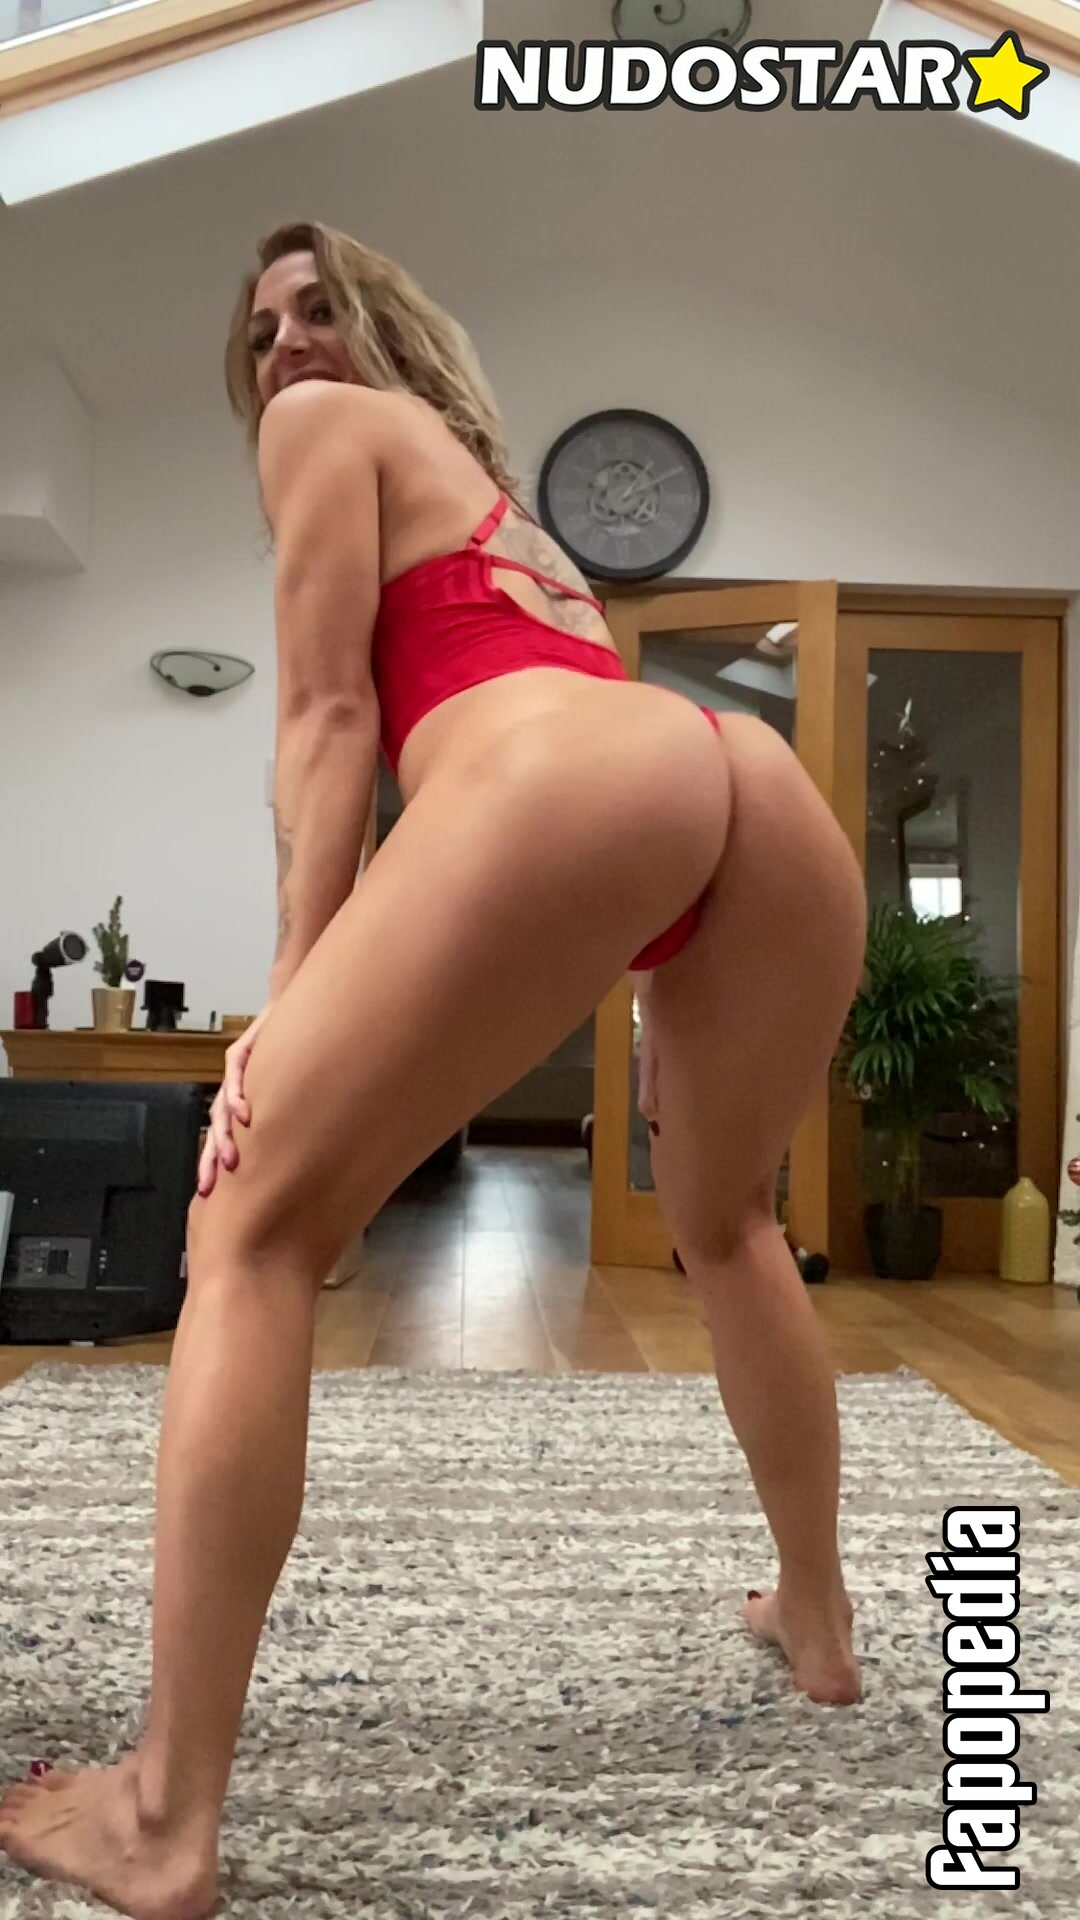 Victoria May89 Nude OnlyFans Leaks